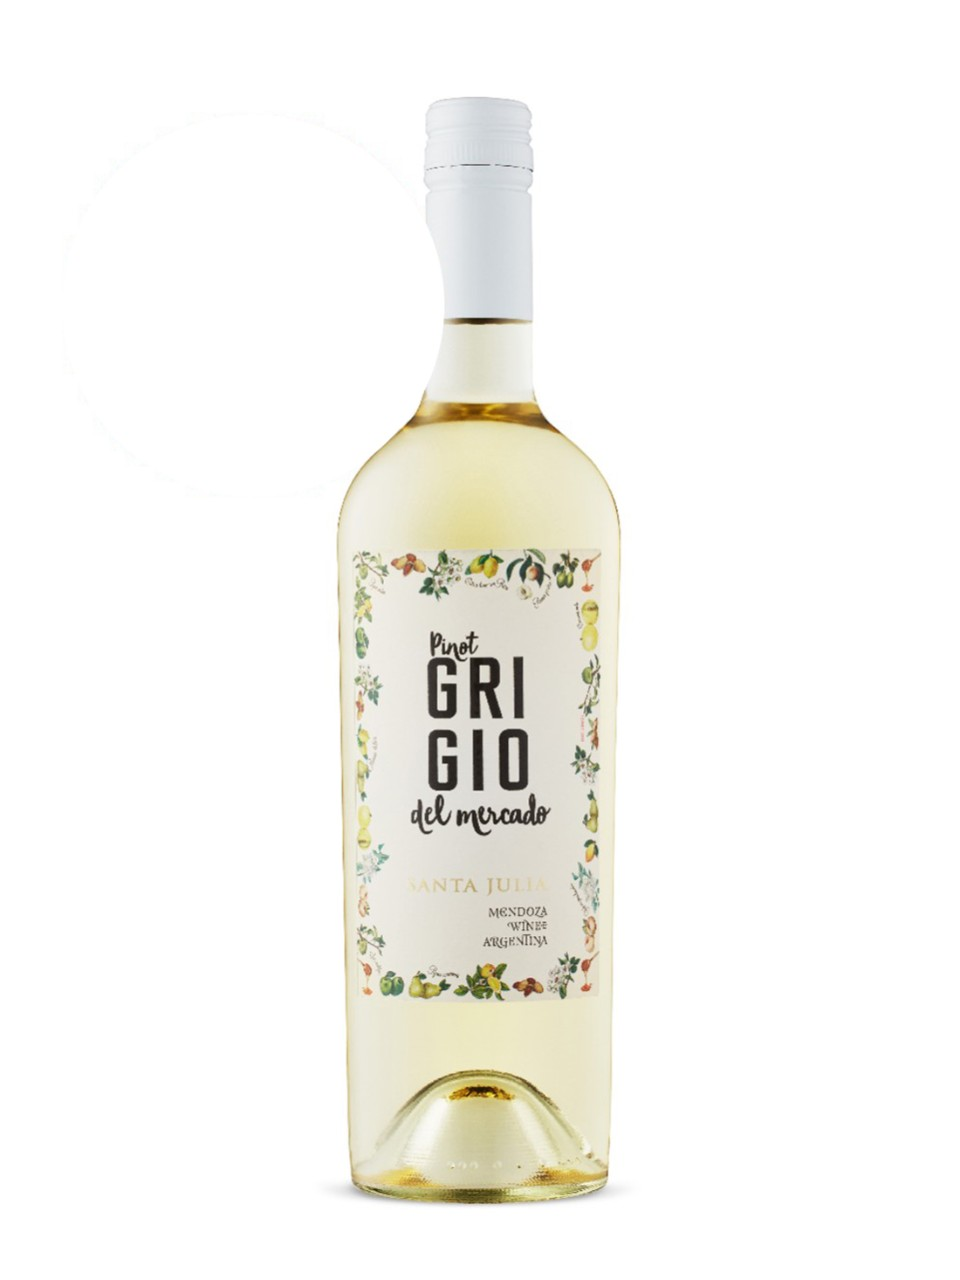 Santa Julia Pinot Grigio Del Mercado from LCBO